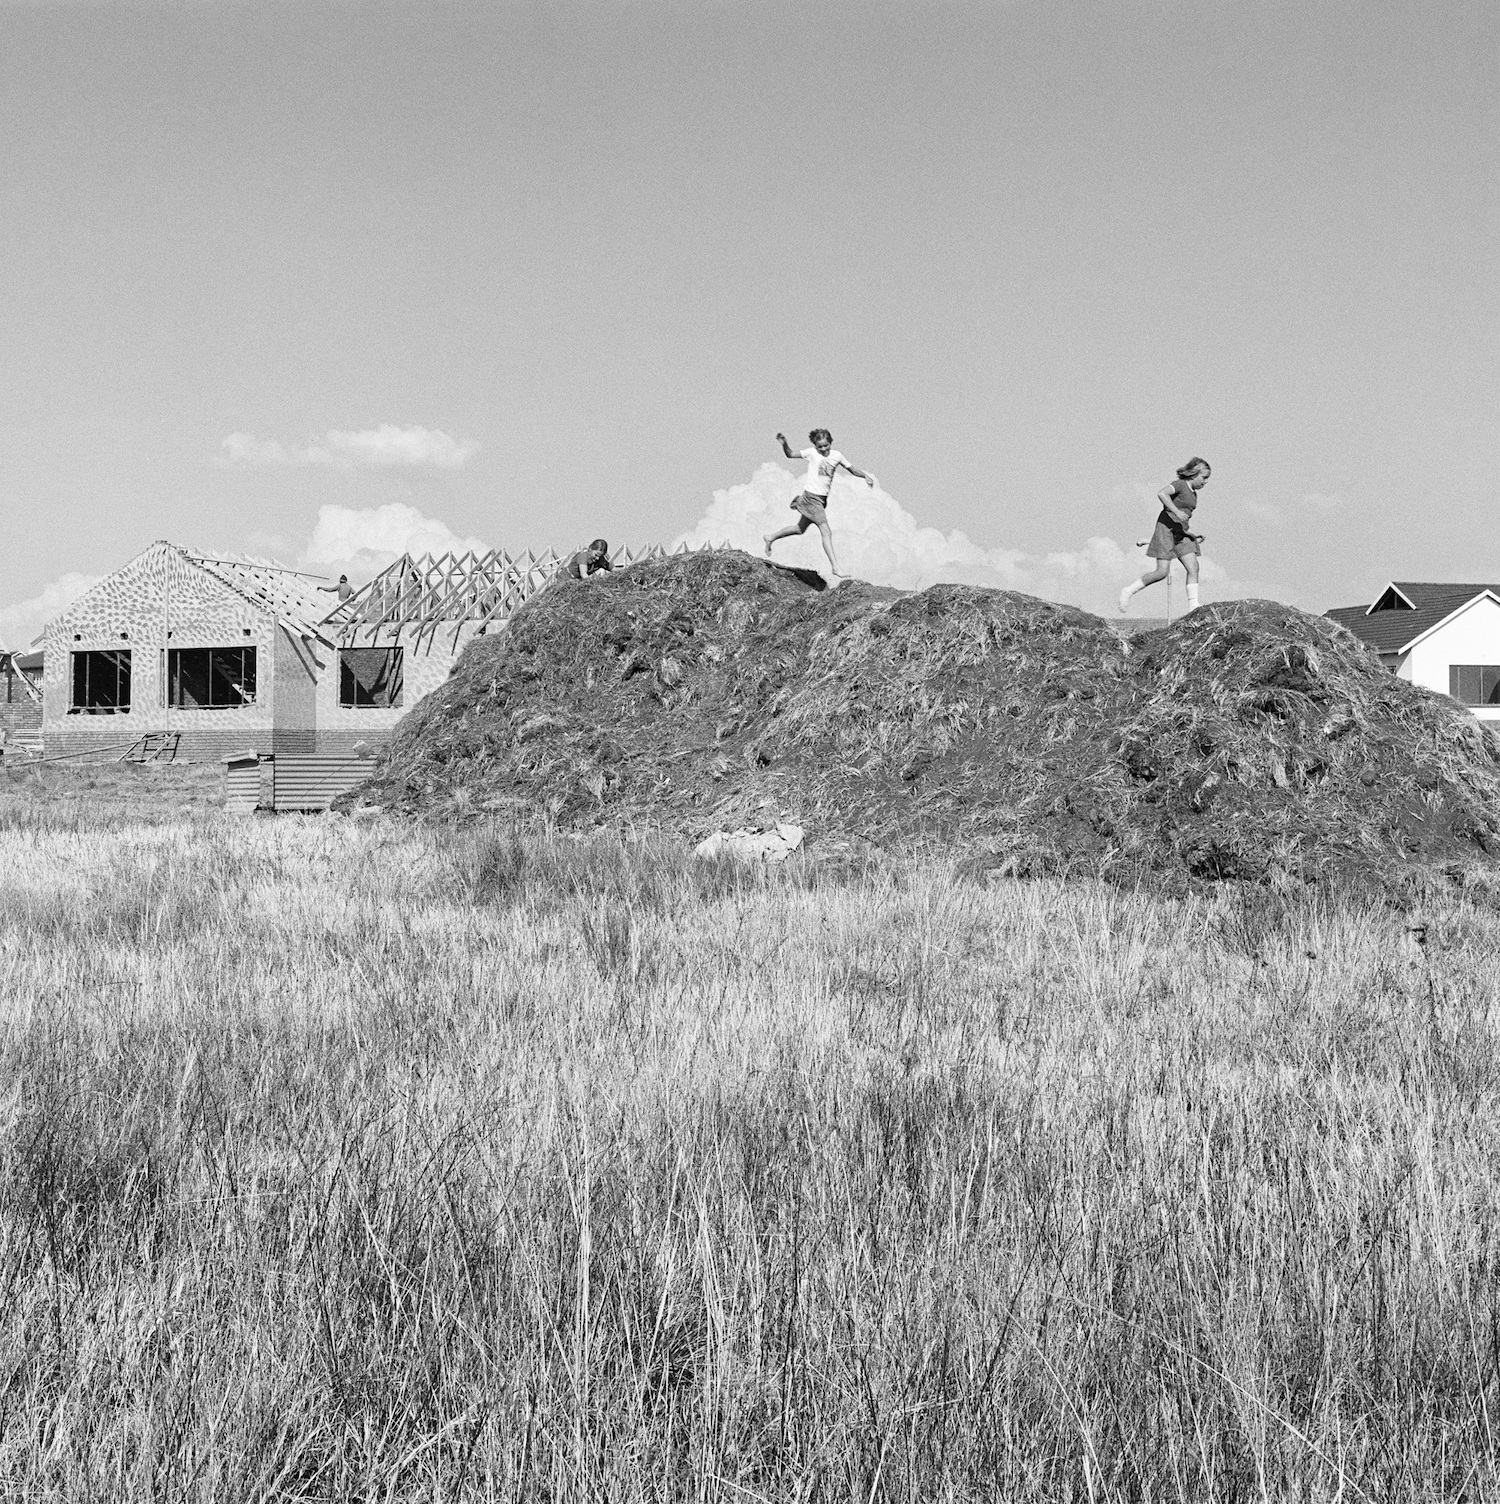 David Goldblatt, Spec housing and children on the veld at Parkrand, 1979